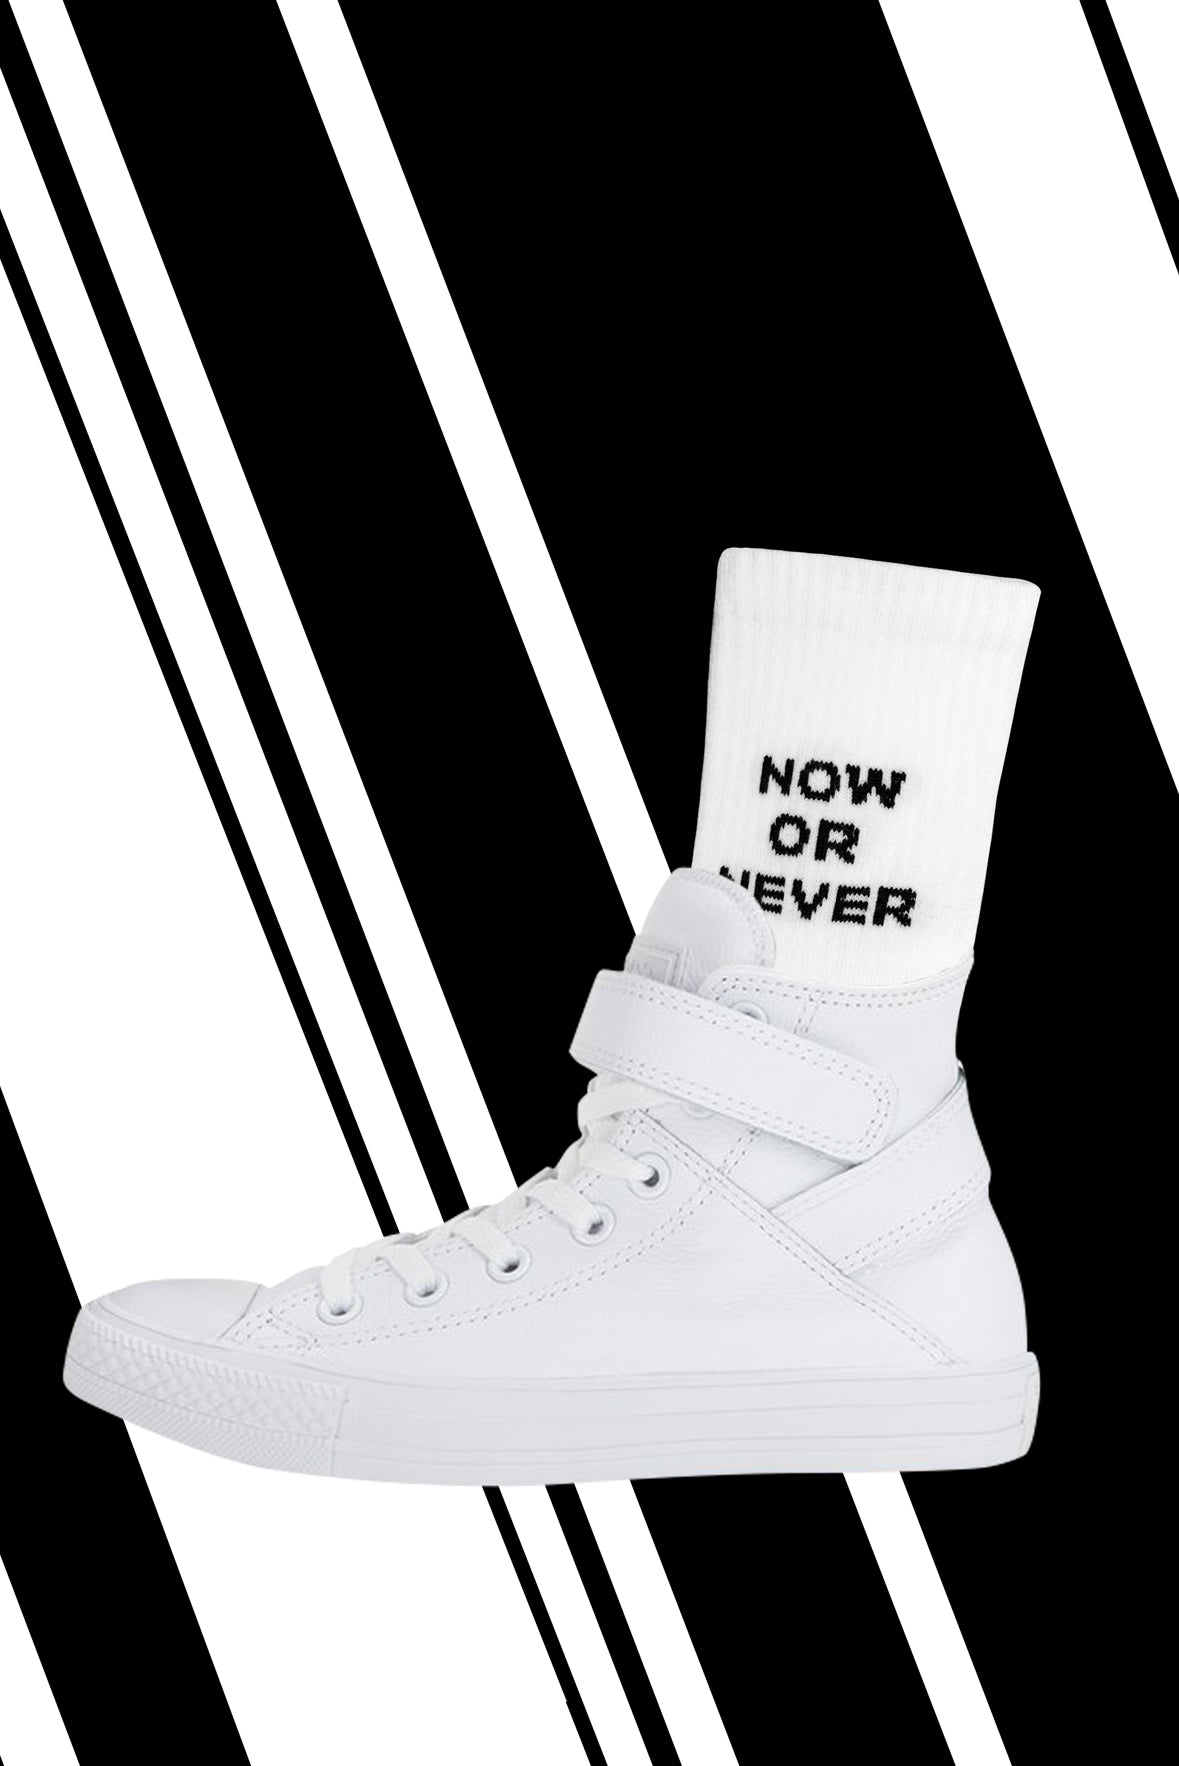 DAMN13 white socks with a naughty slogan. Wear with pride. Open to all. Identity to wear.